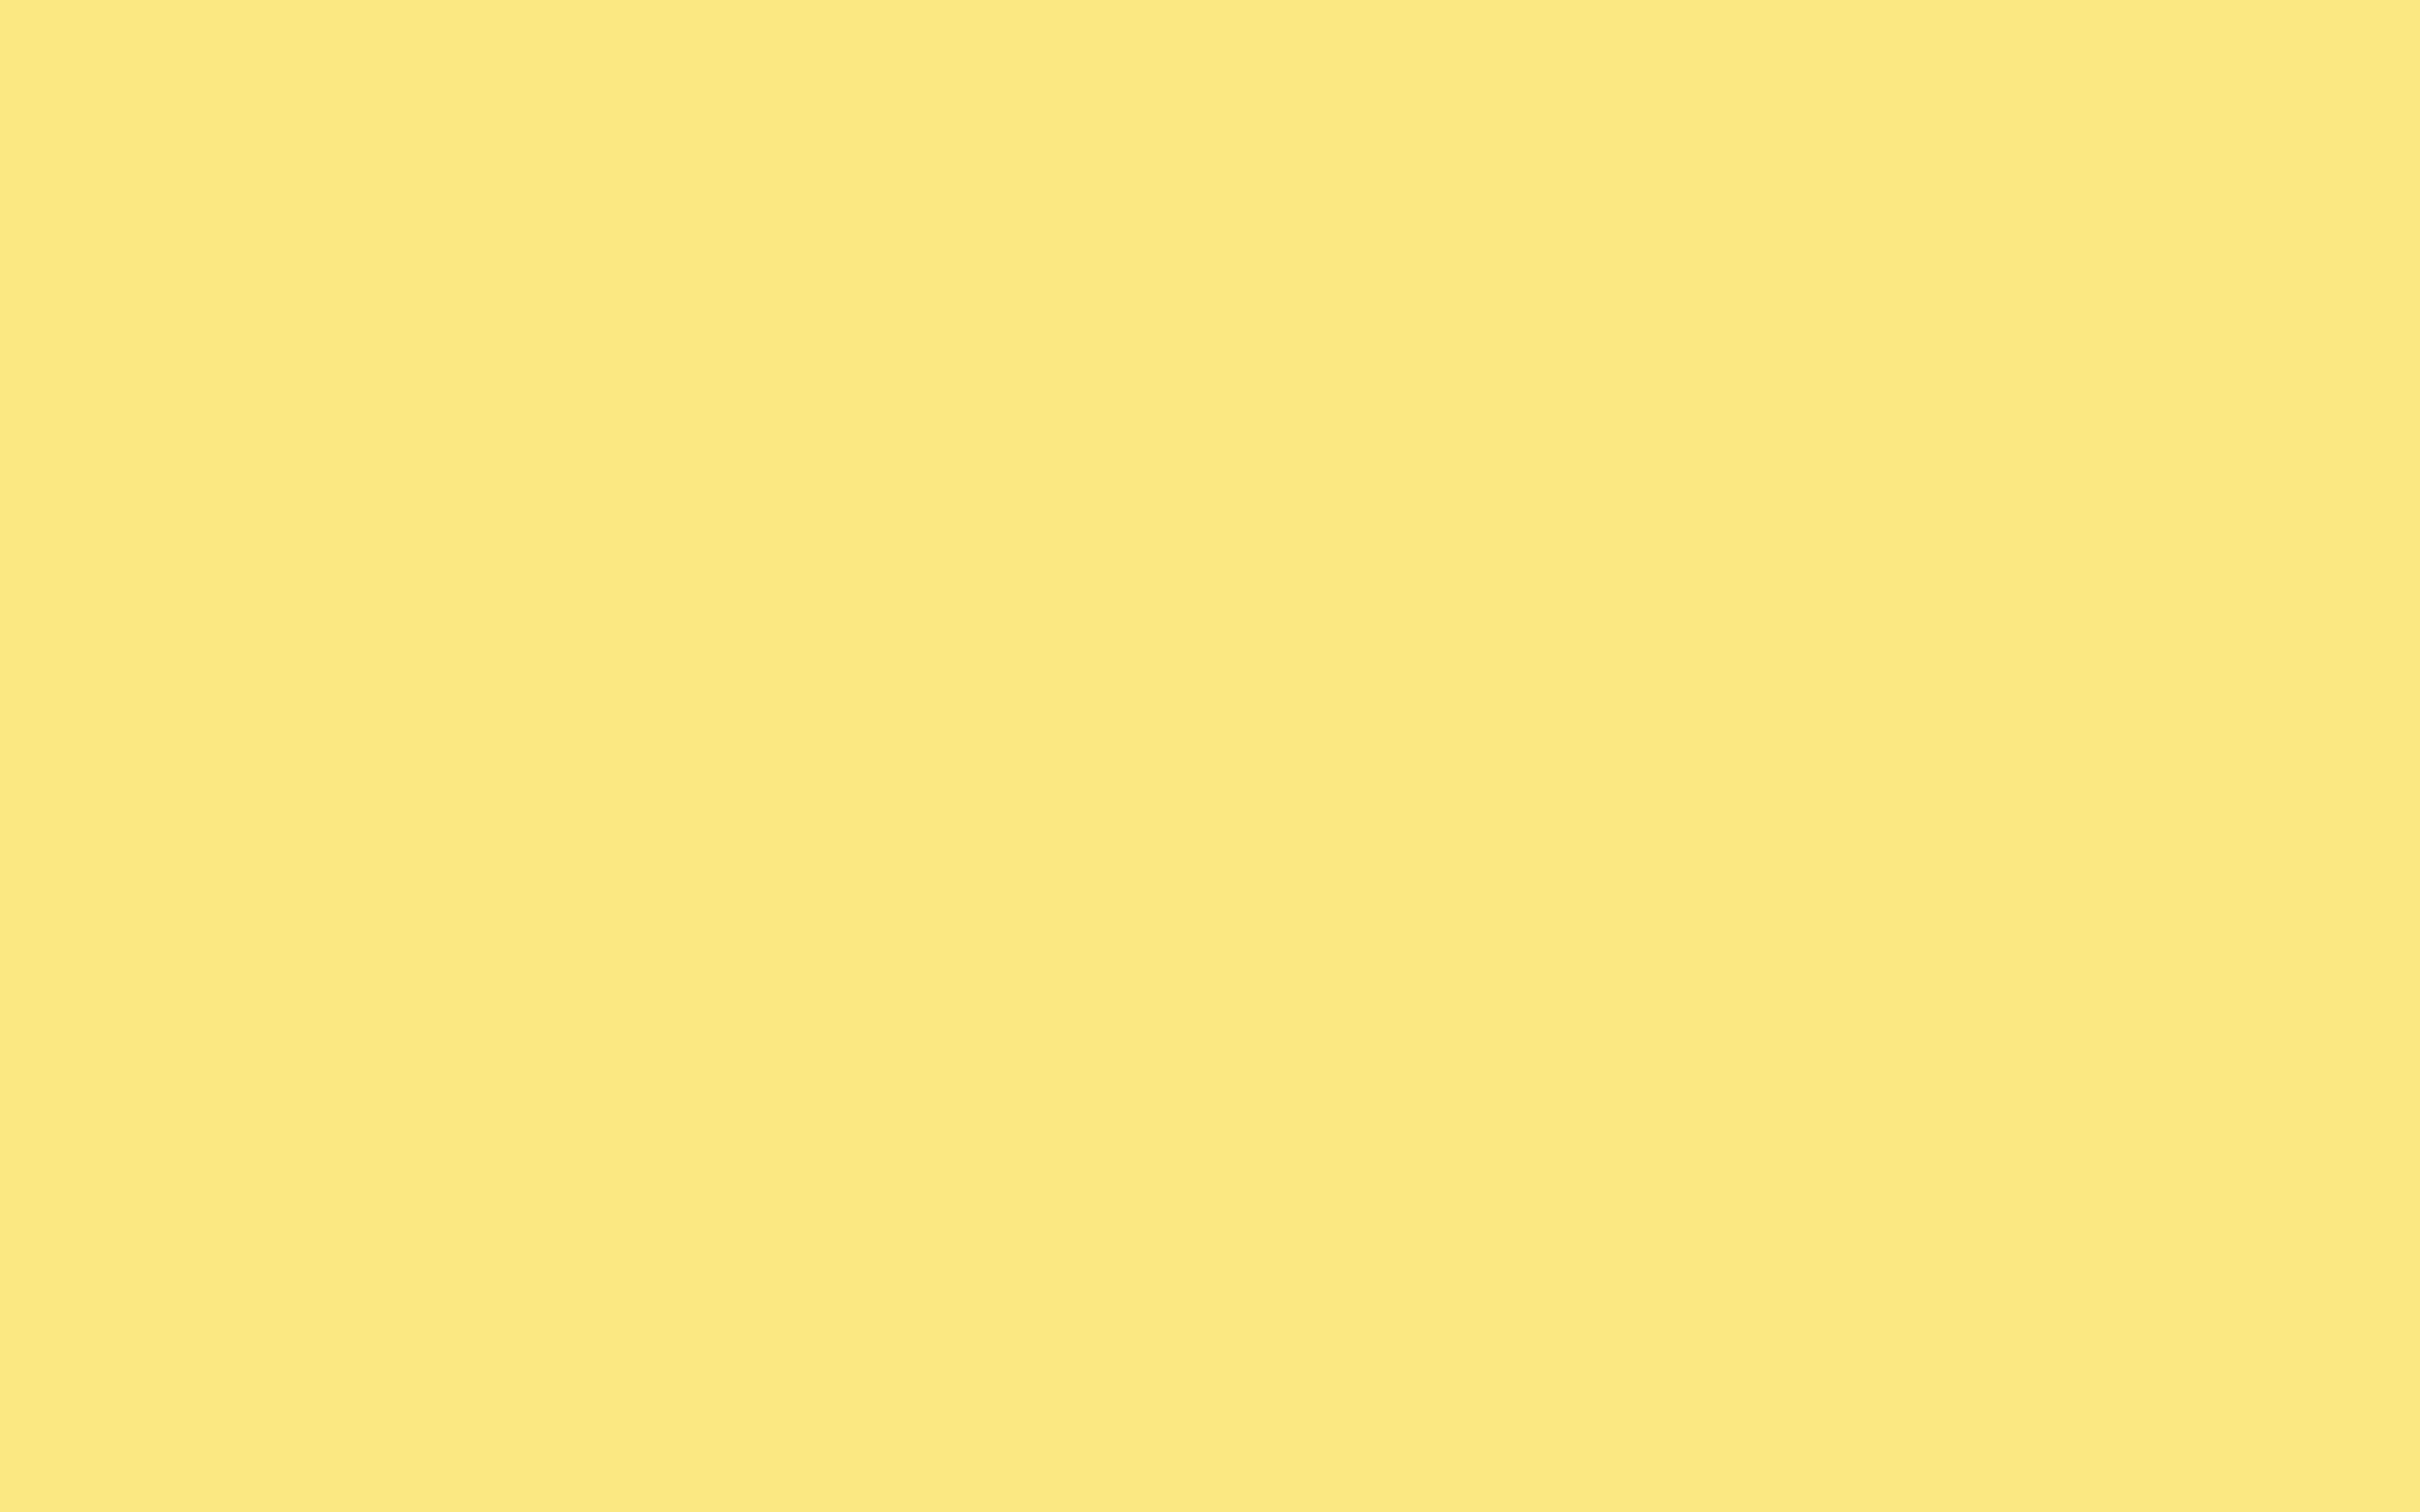 2560x1600 Yellow Crayola Solid Color Background